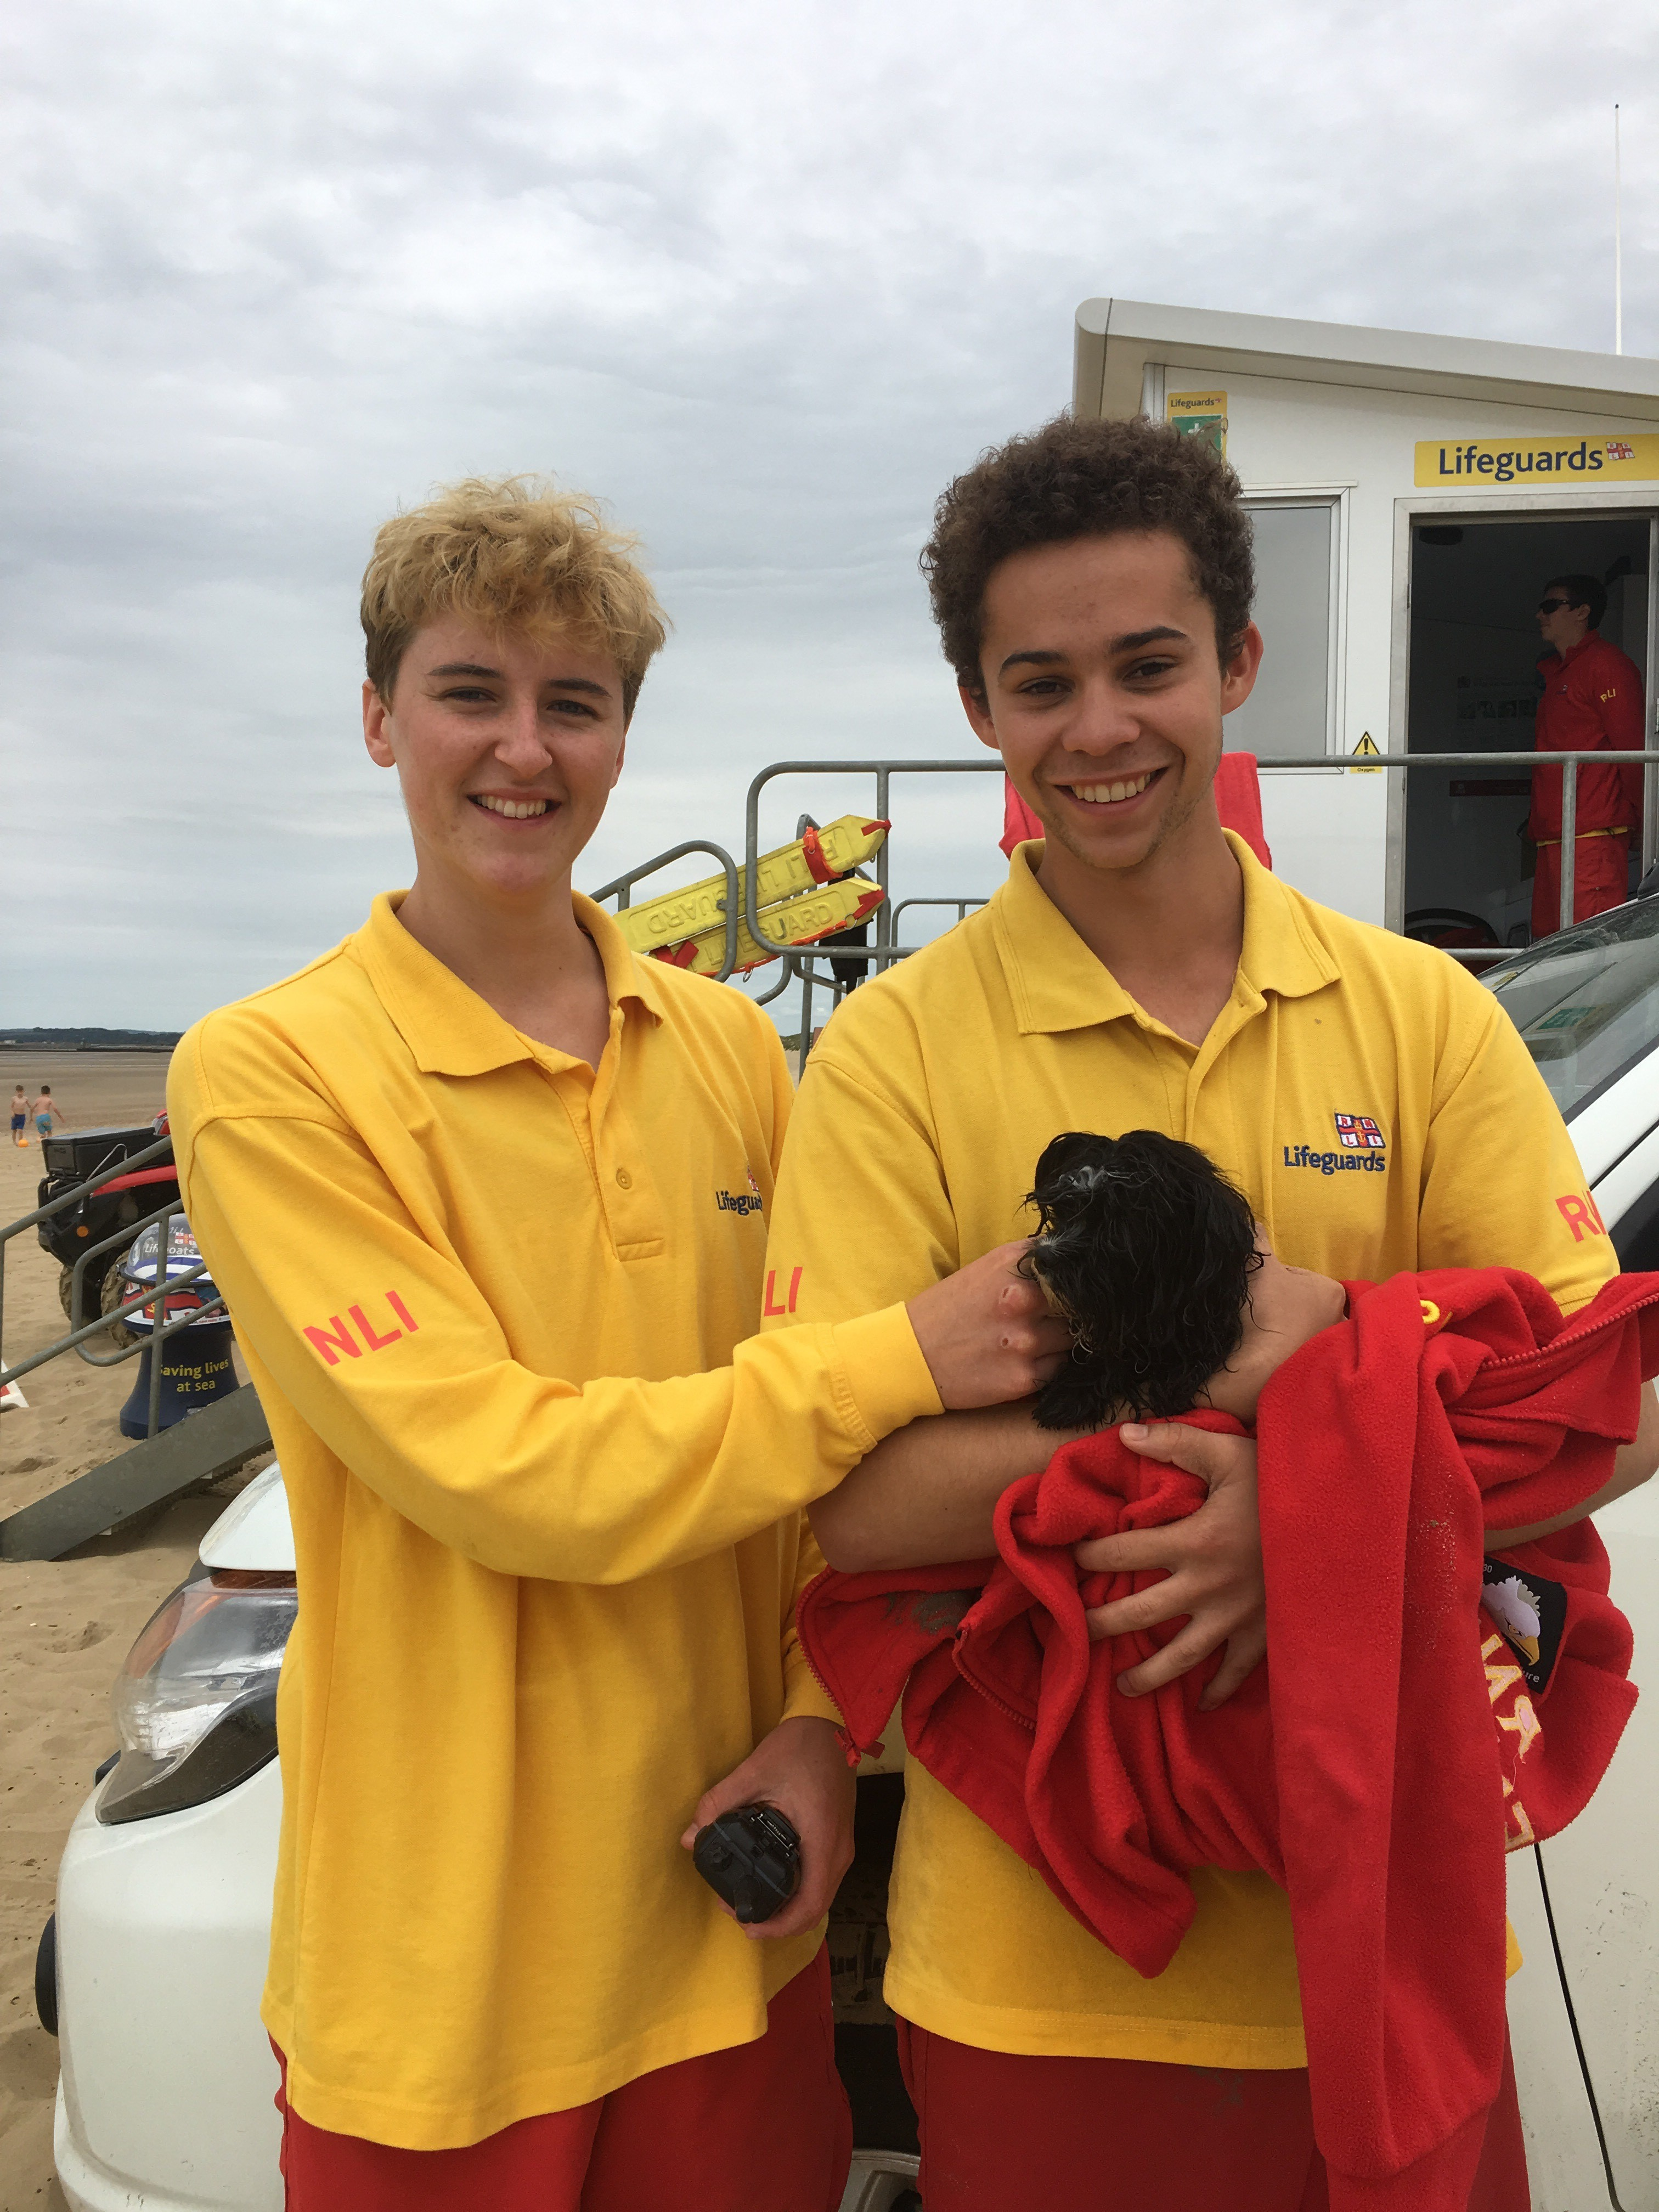 RNLI Lifeguards Georgia Landy and Laurence Petit after yesterday's rescue